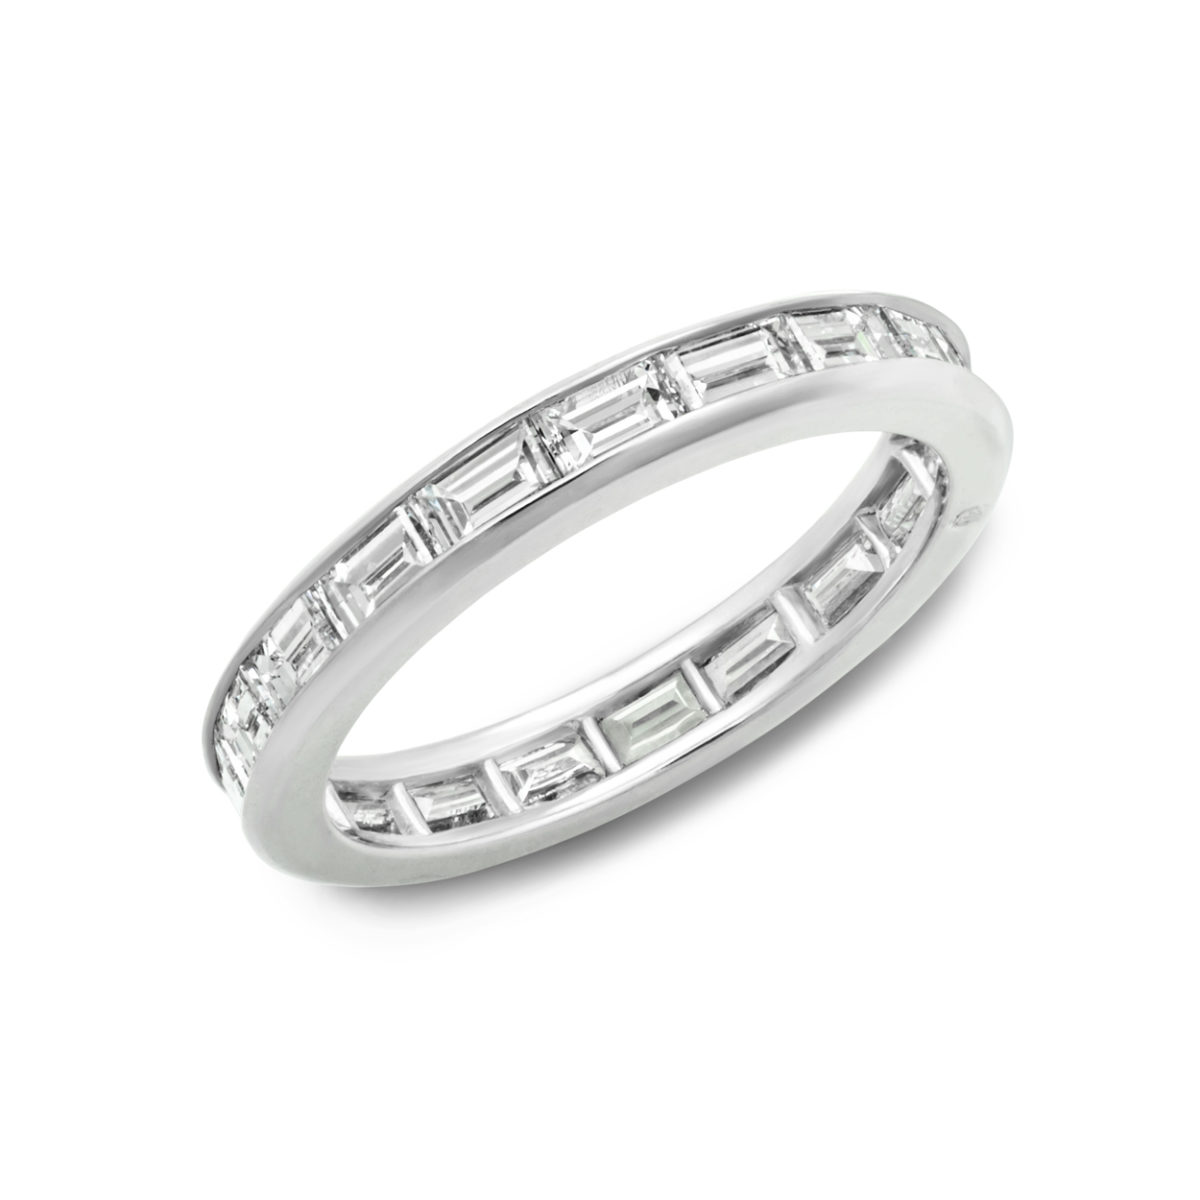 wedding diamonds engagement diamond eternity baguette ring bands promise rings band